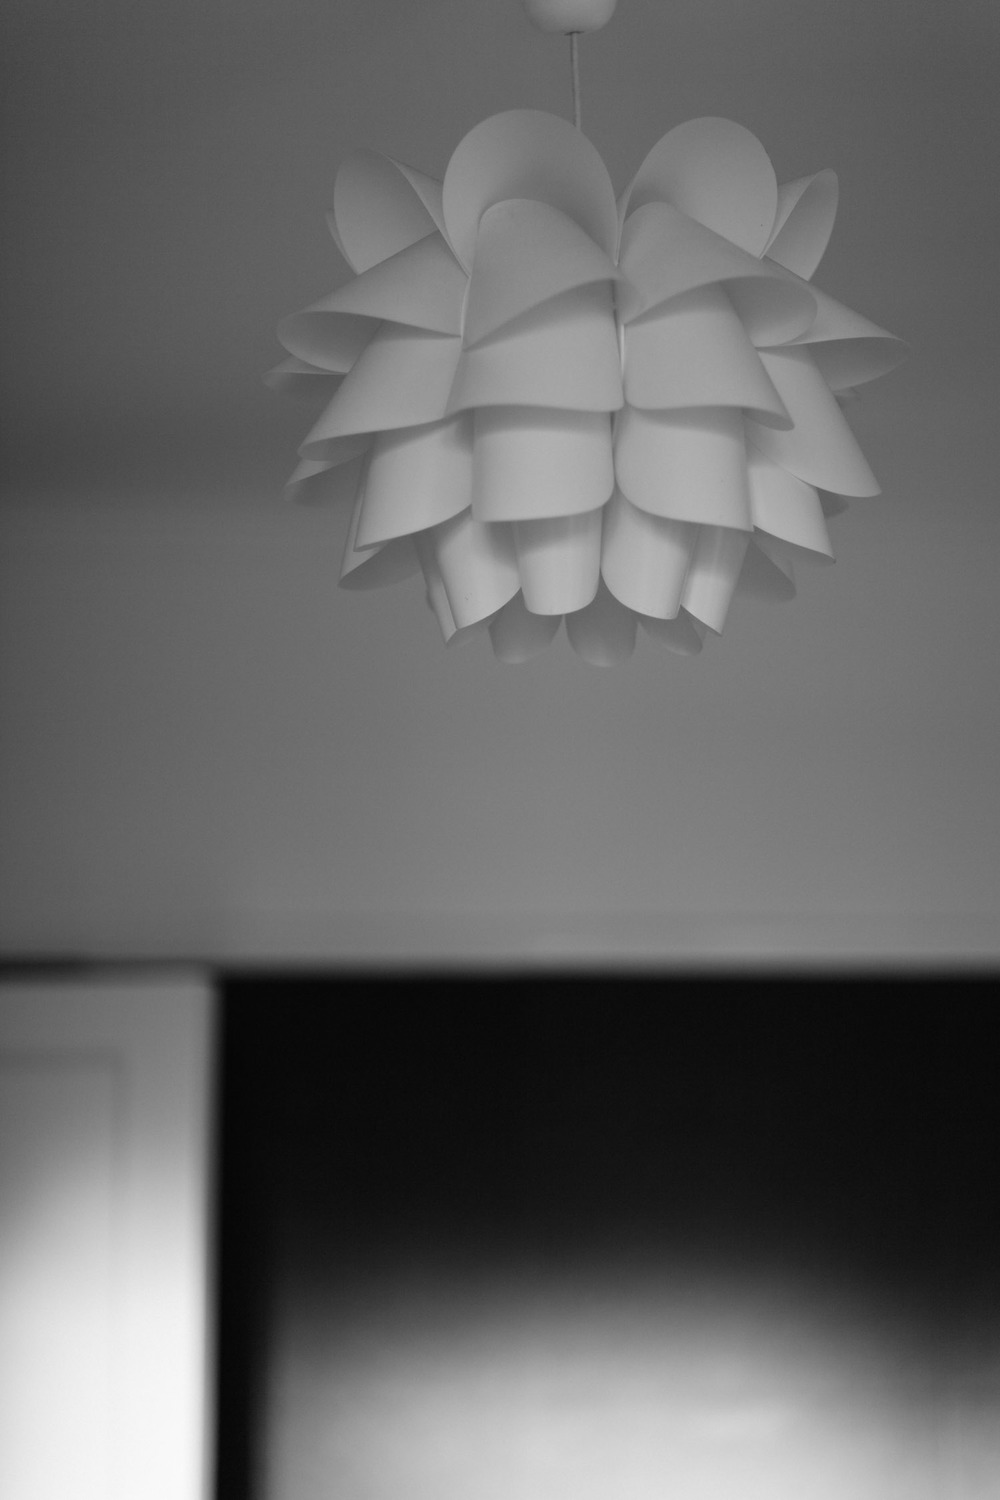 mornings_lightfixture-8826.jpg